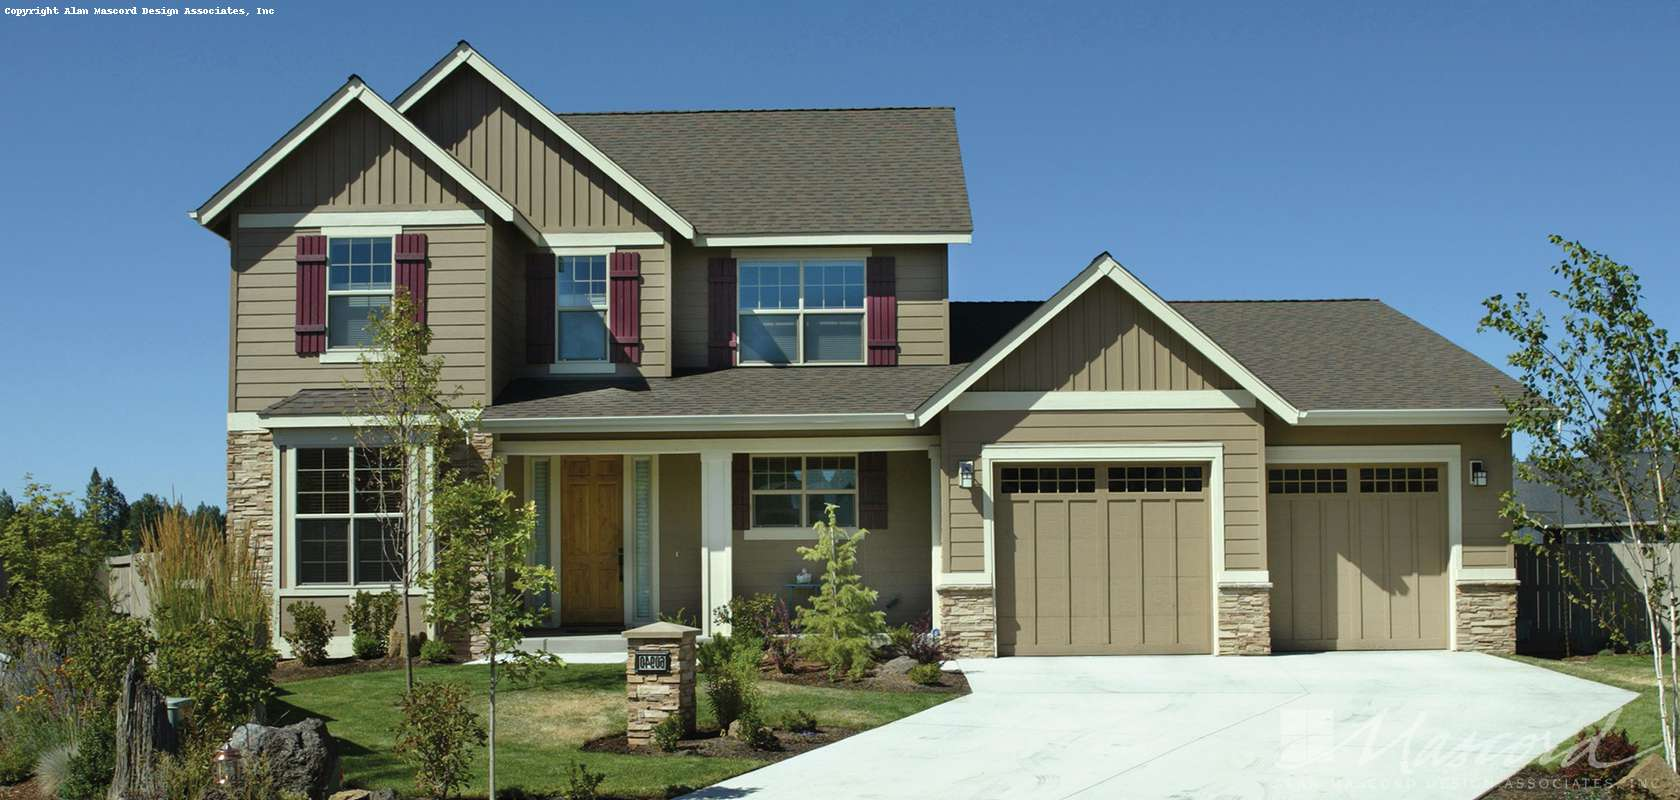 Mascord House Plan 22146A: The Dellwood